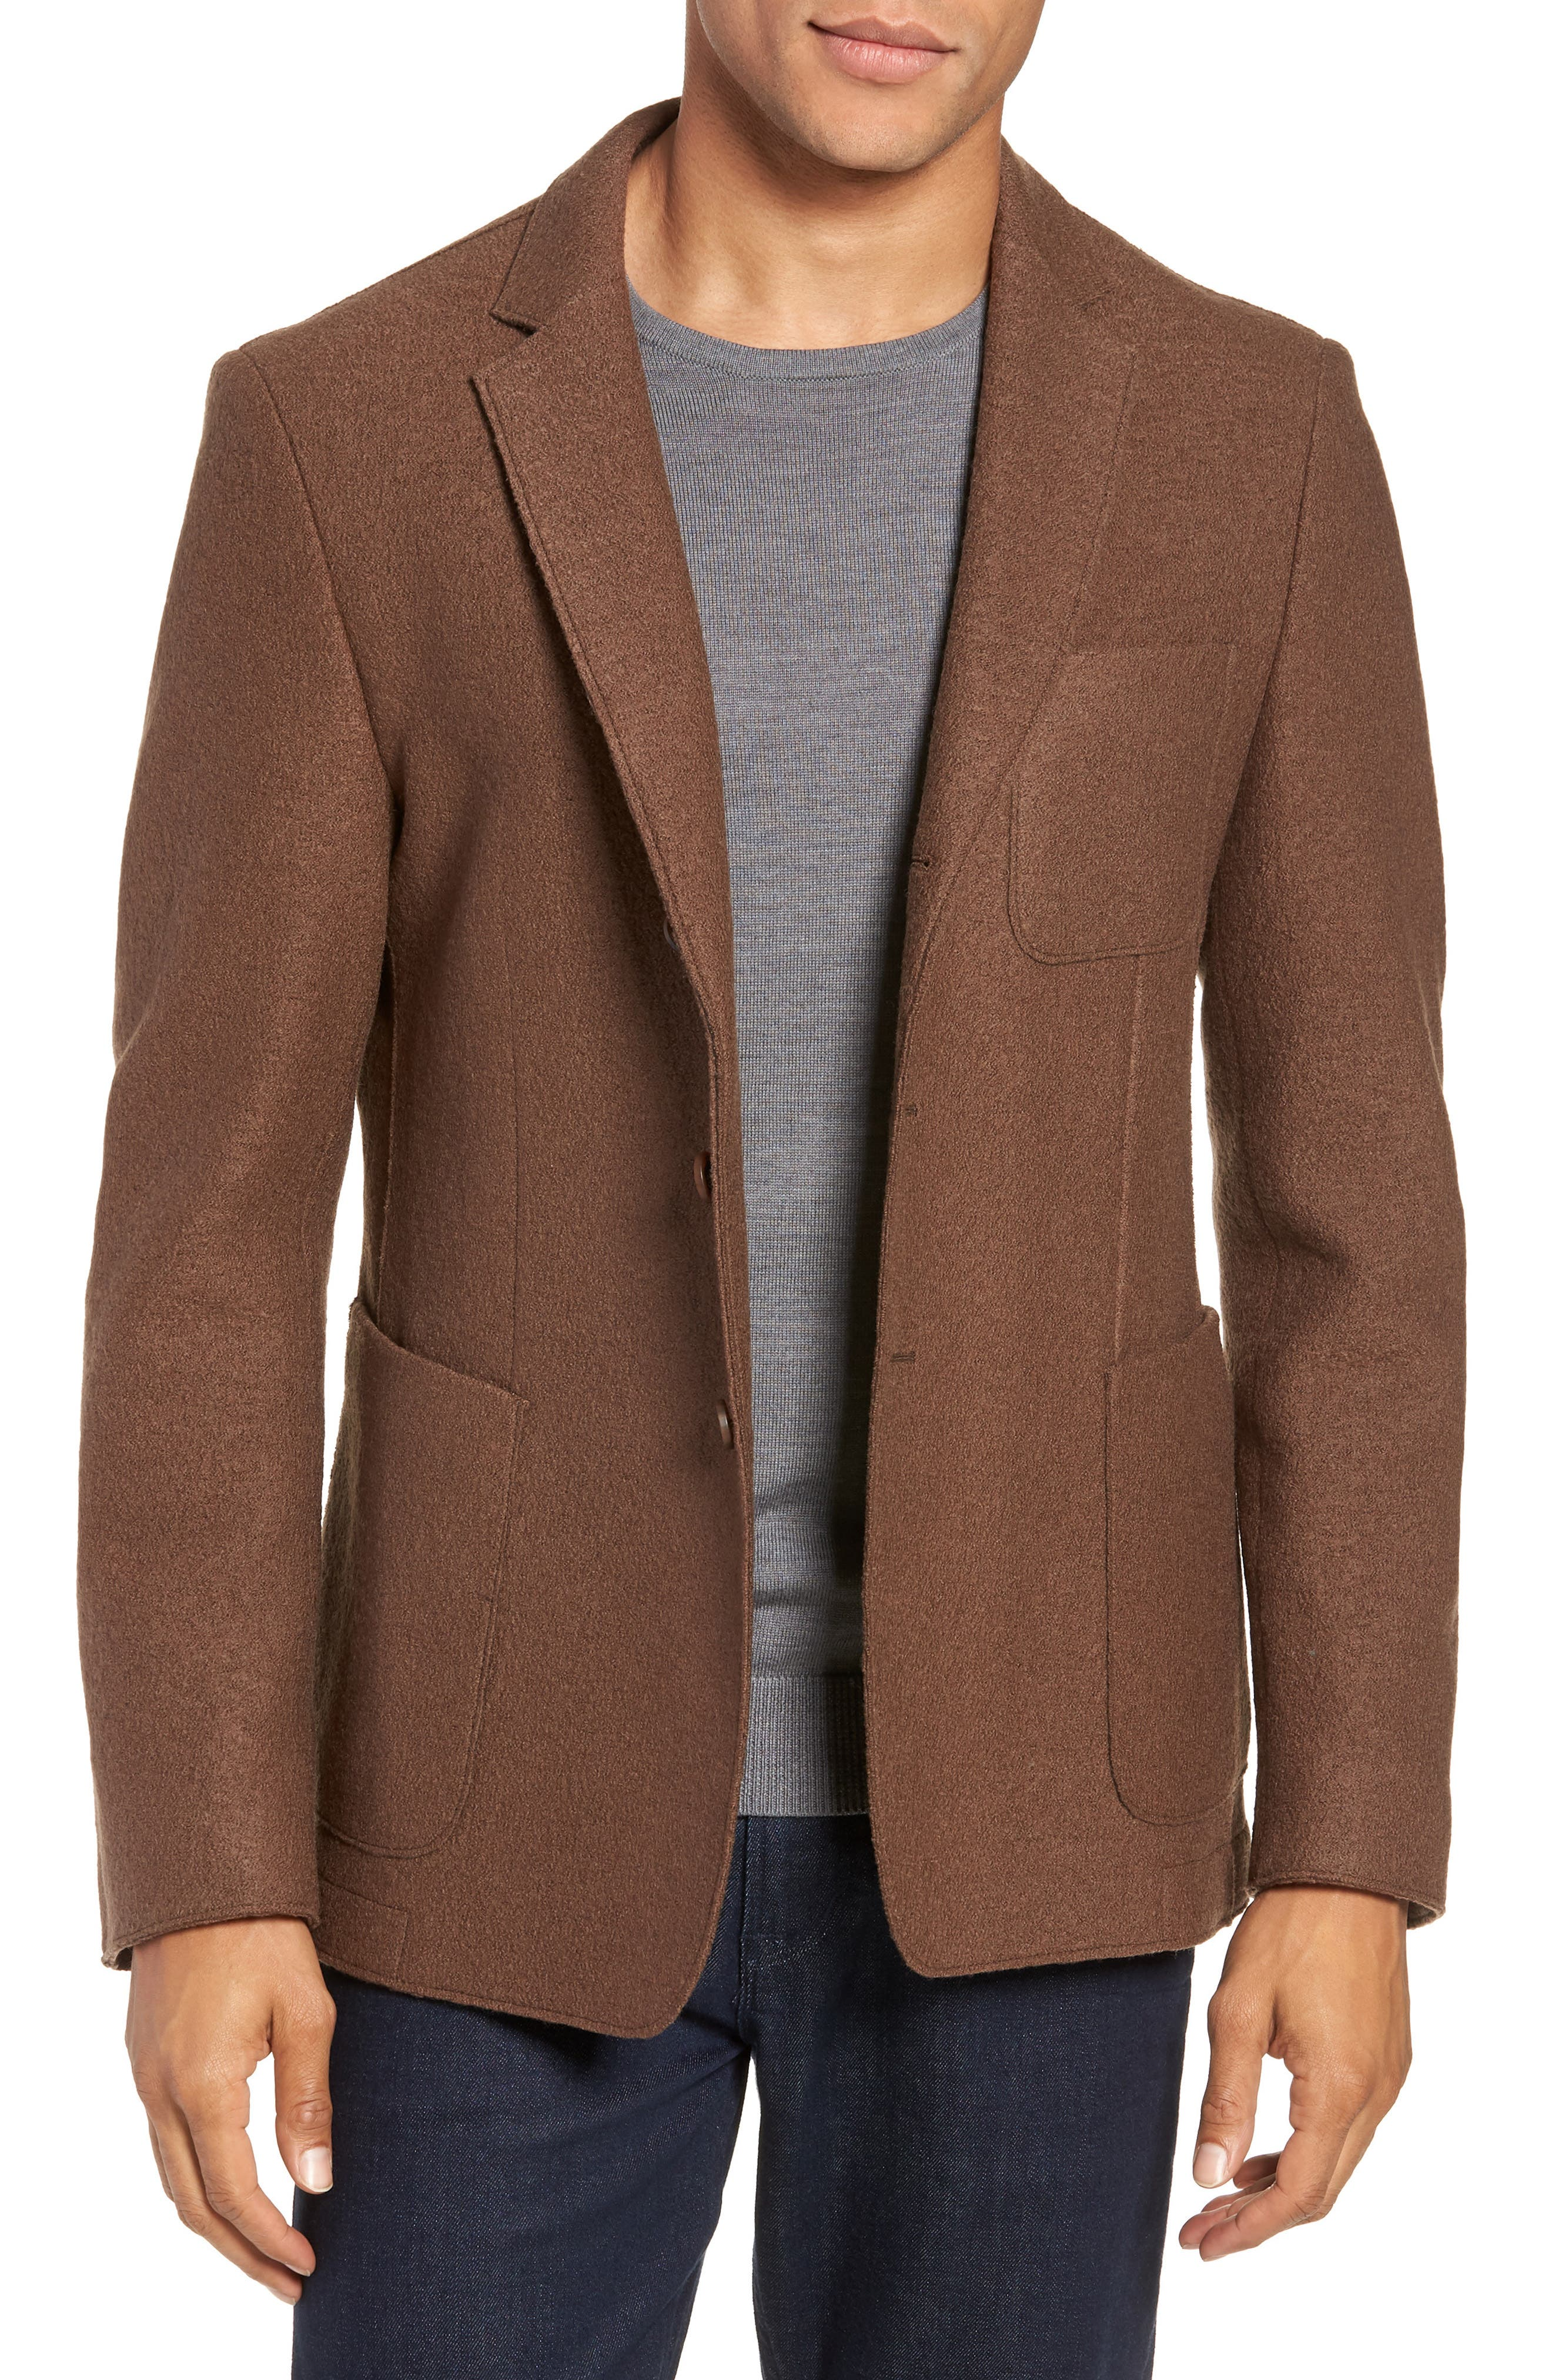 Nixan Trim Fit Wool Sport Coat,                         Main,                         color, LIGHT/ PASTEL BROWN